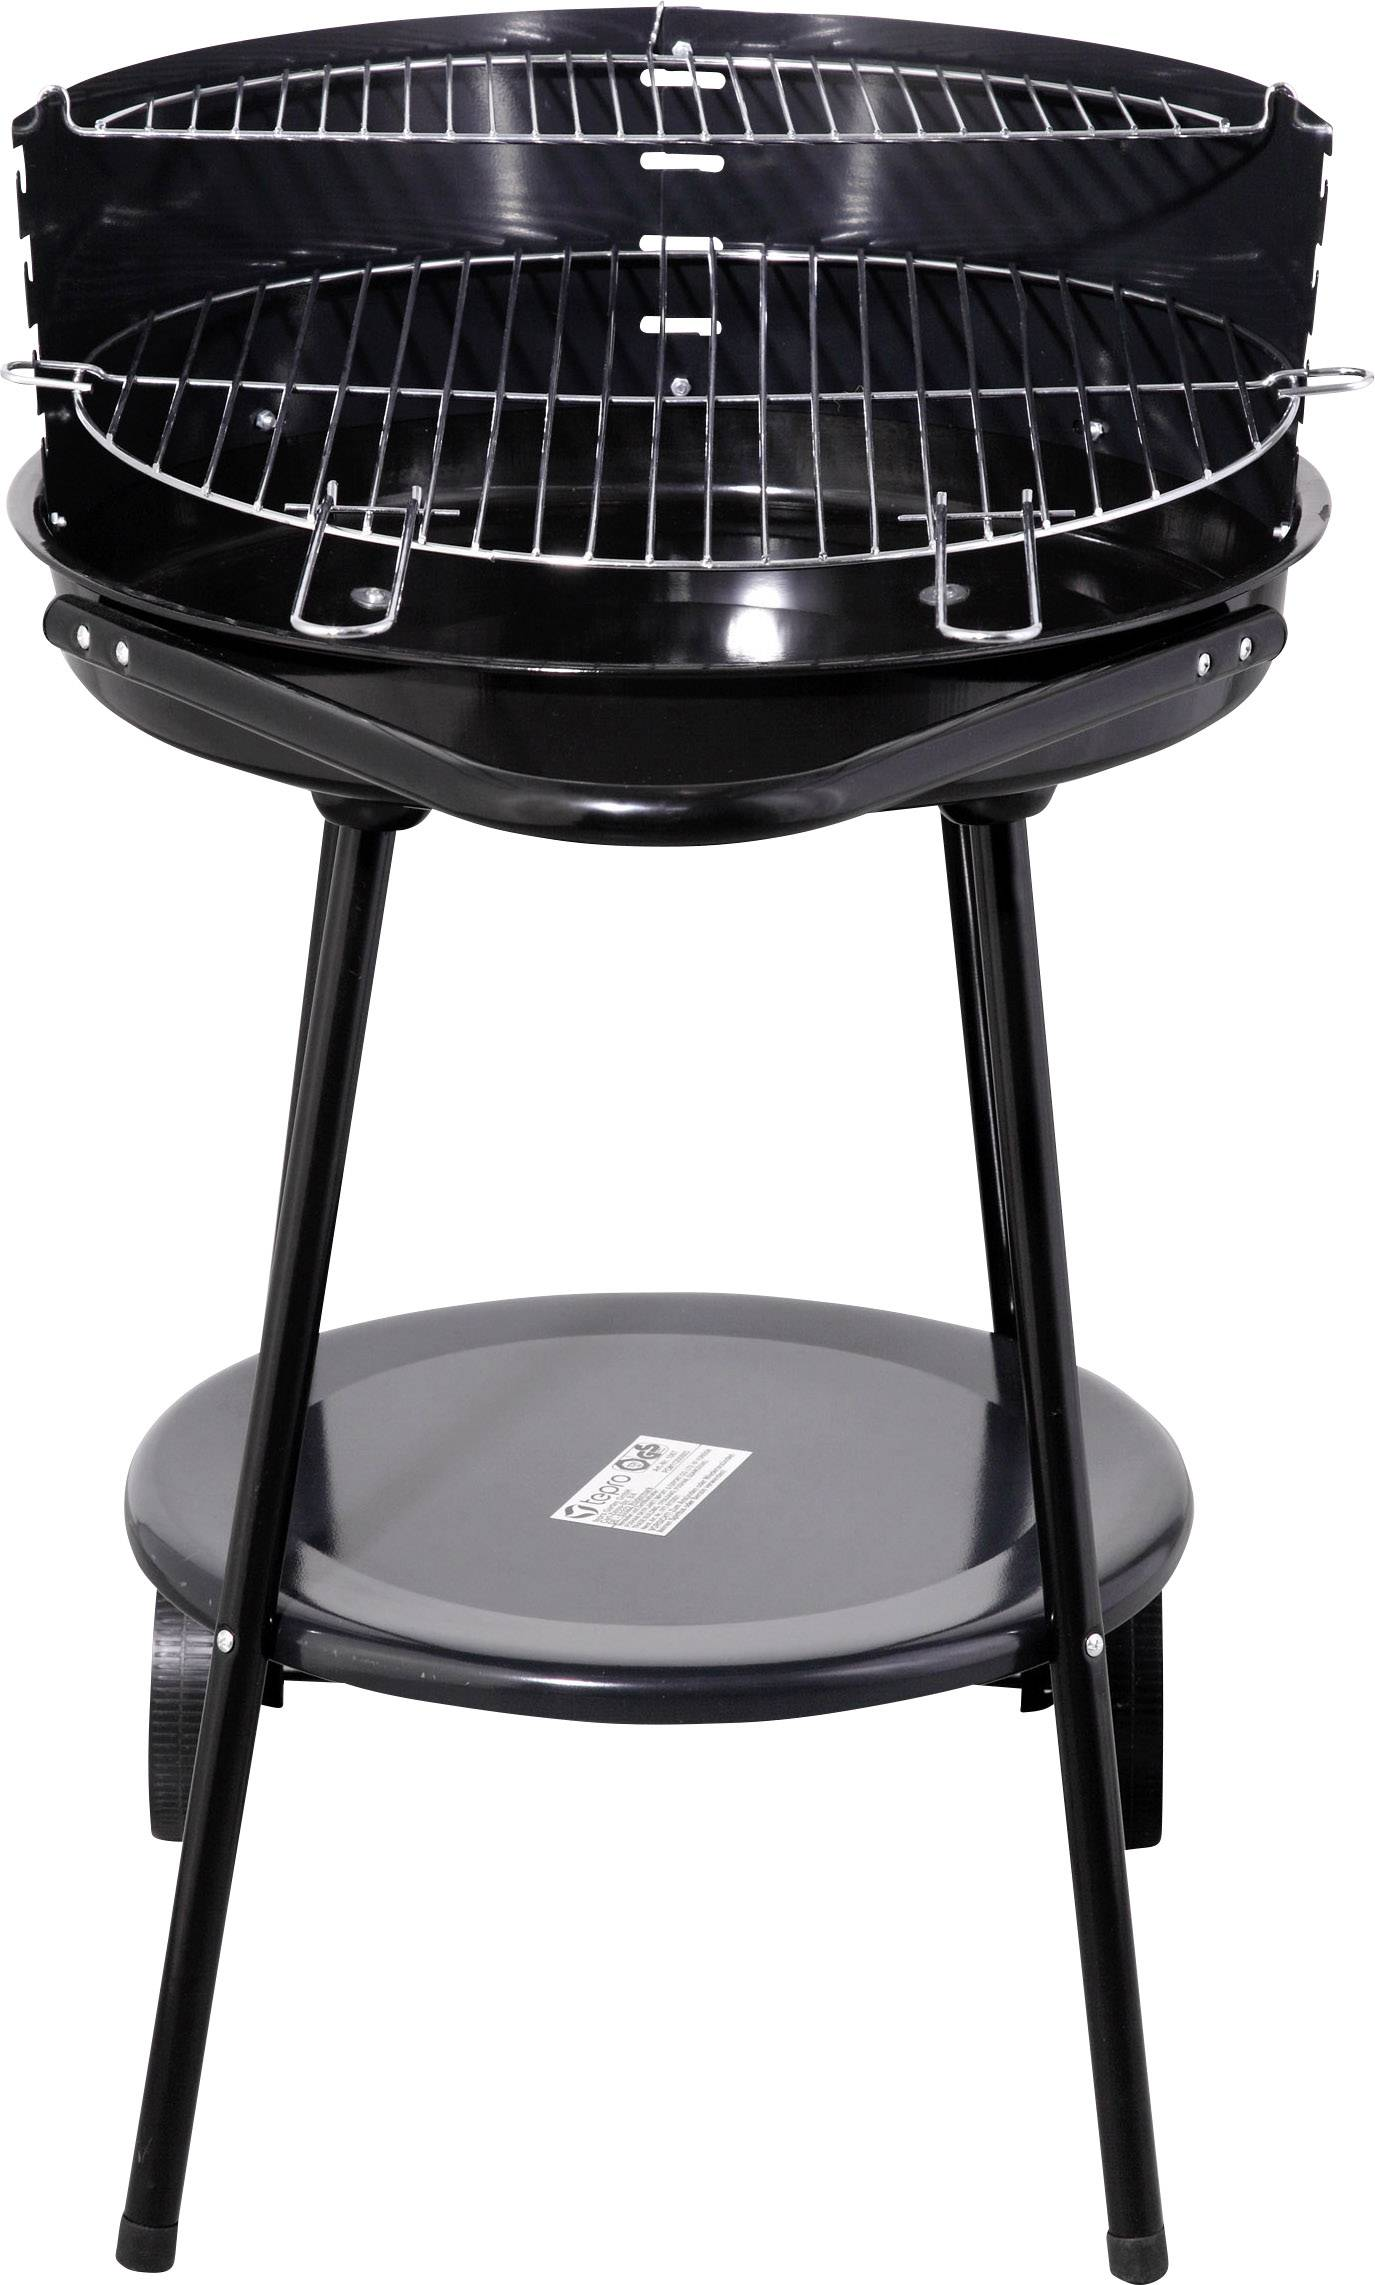 Tepro Garten Rundgrill Highland Round Charcoal Grill With Wind